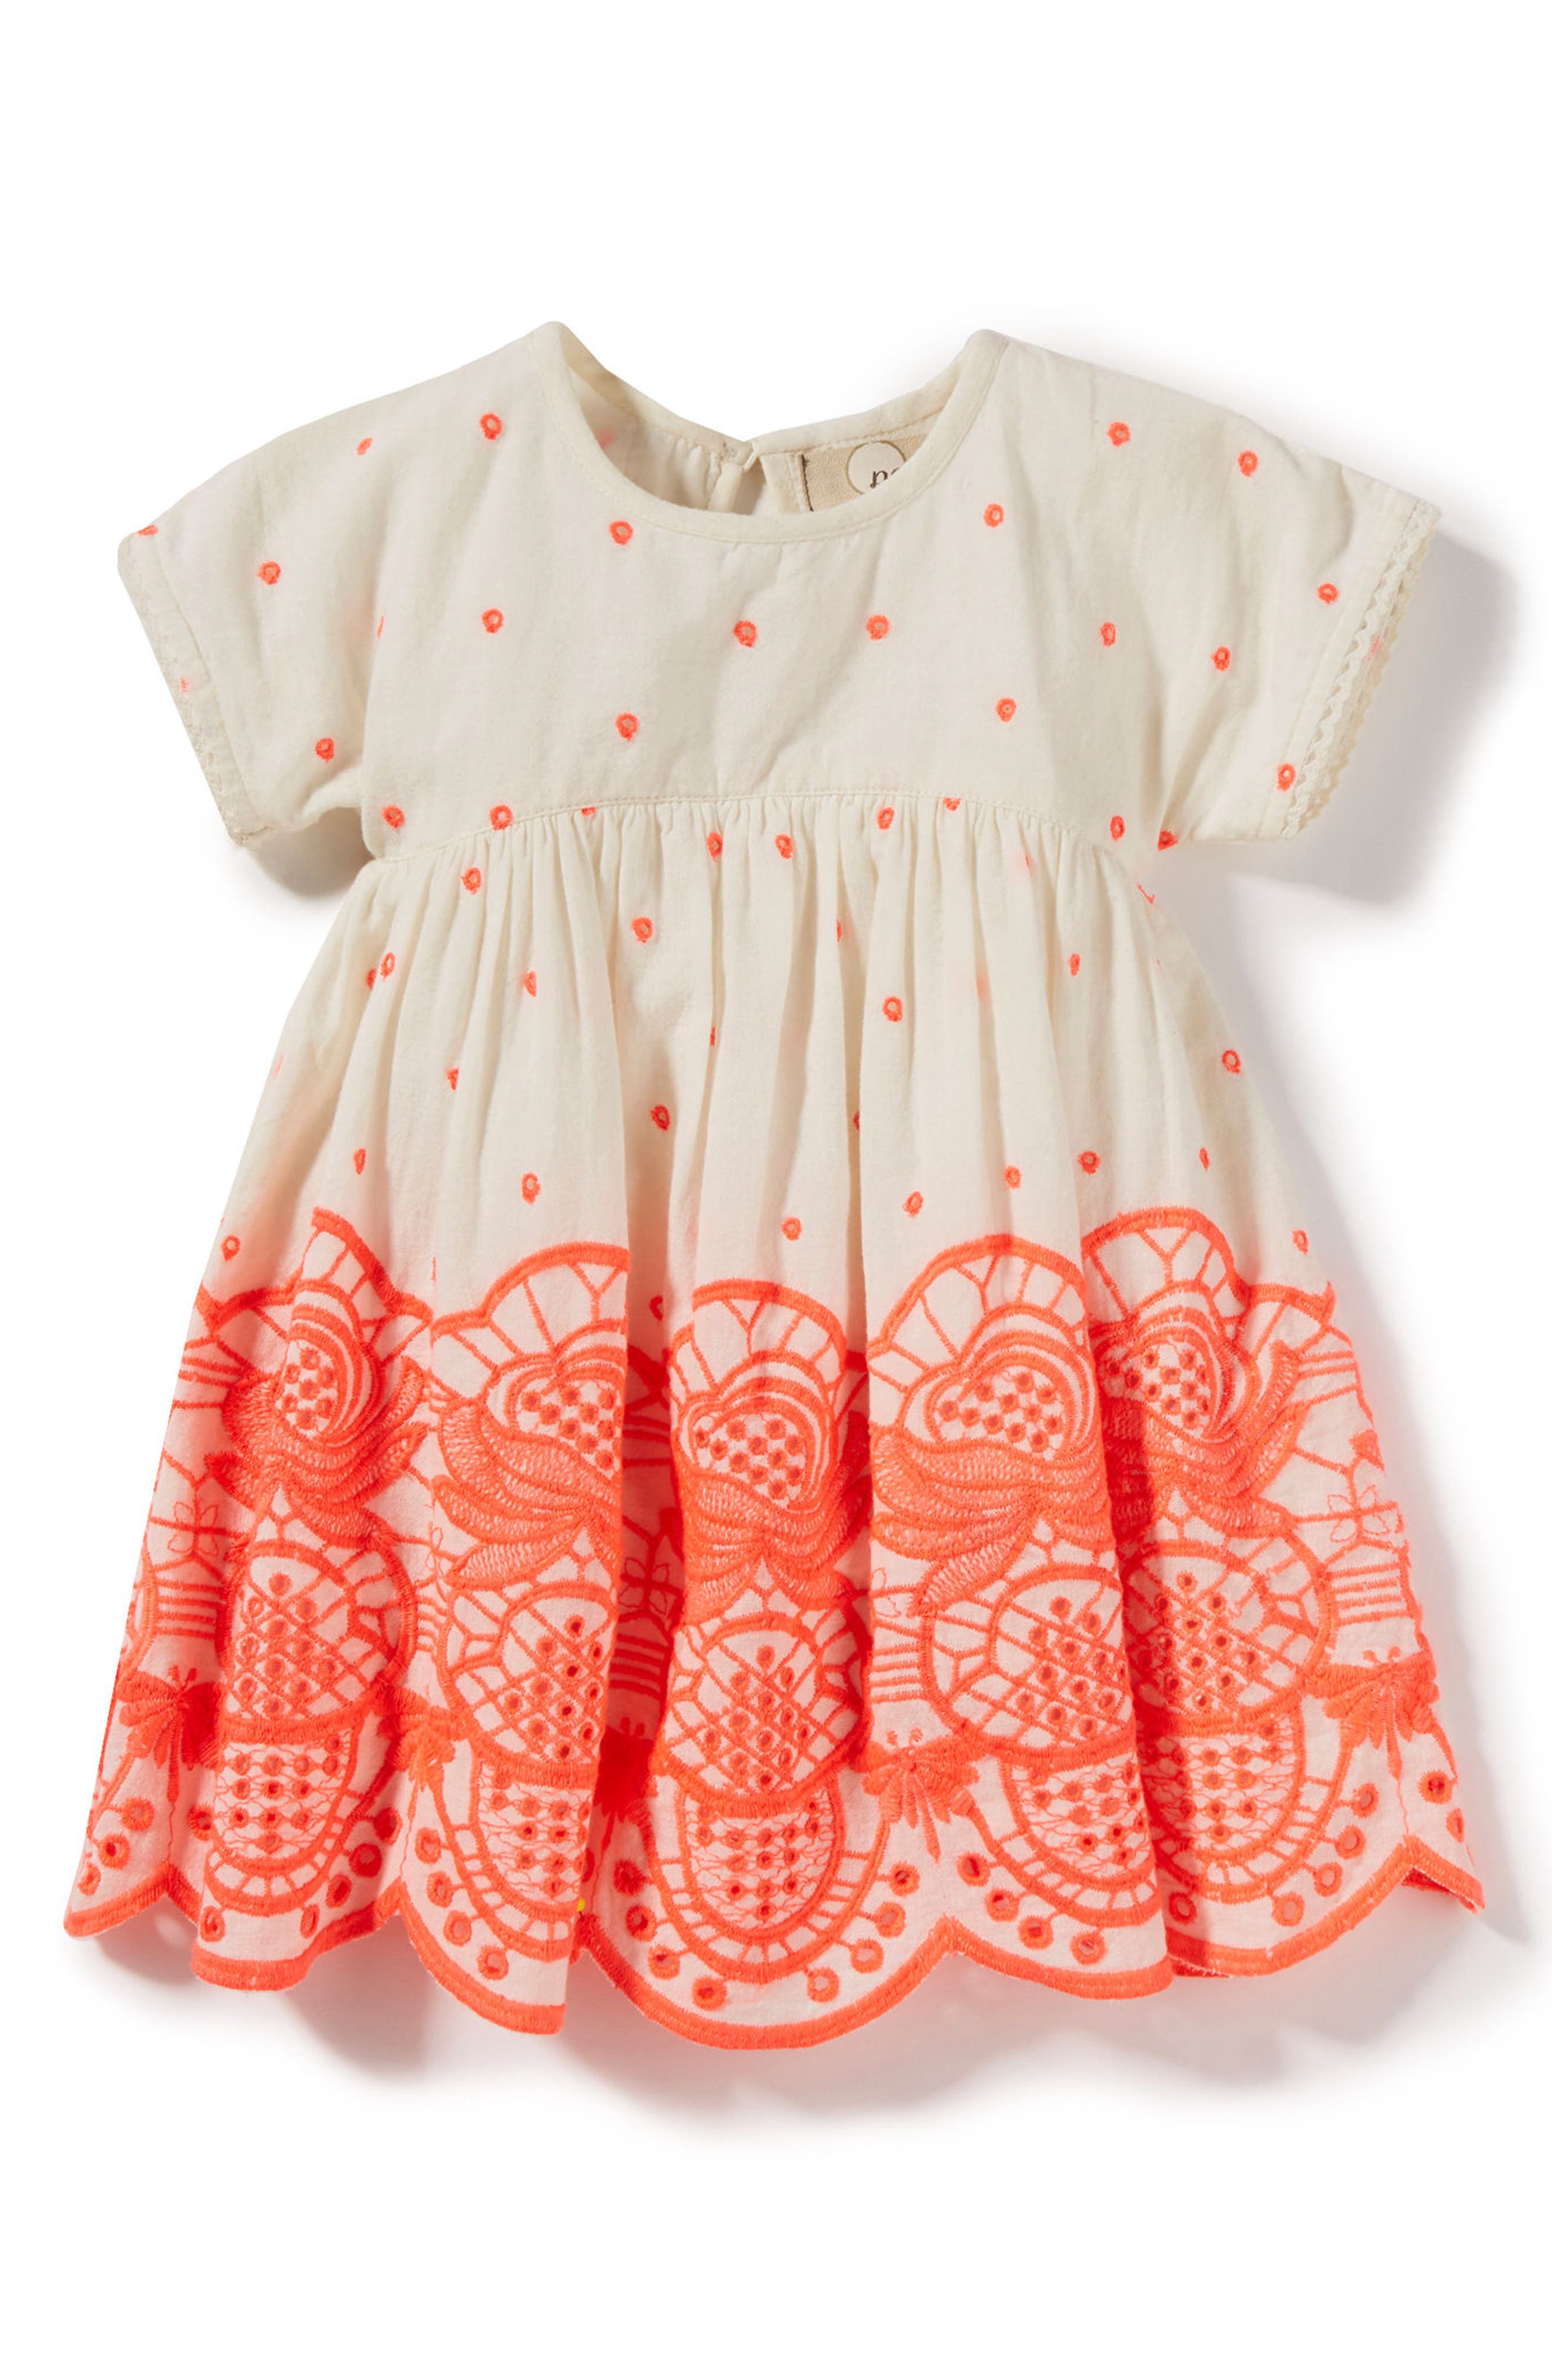 Alternate Image 1 Selected - Peek Sun Embroidered Dress (Baby Girls)